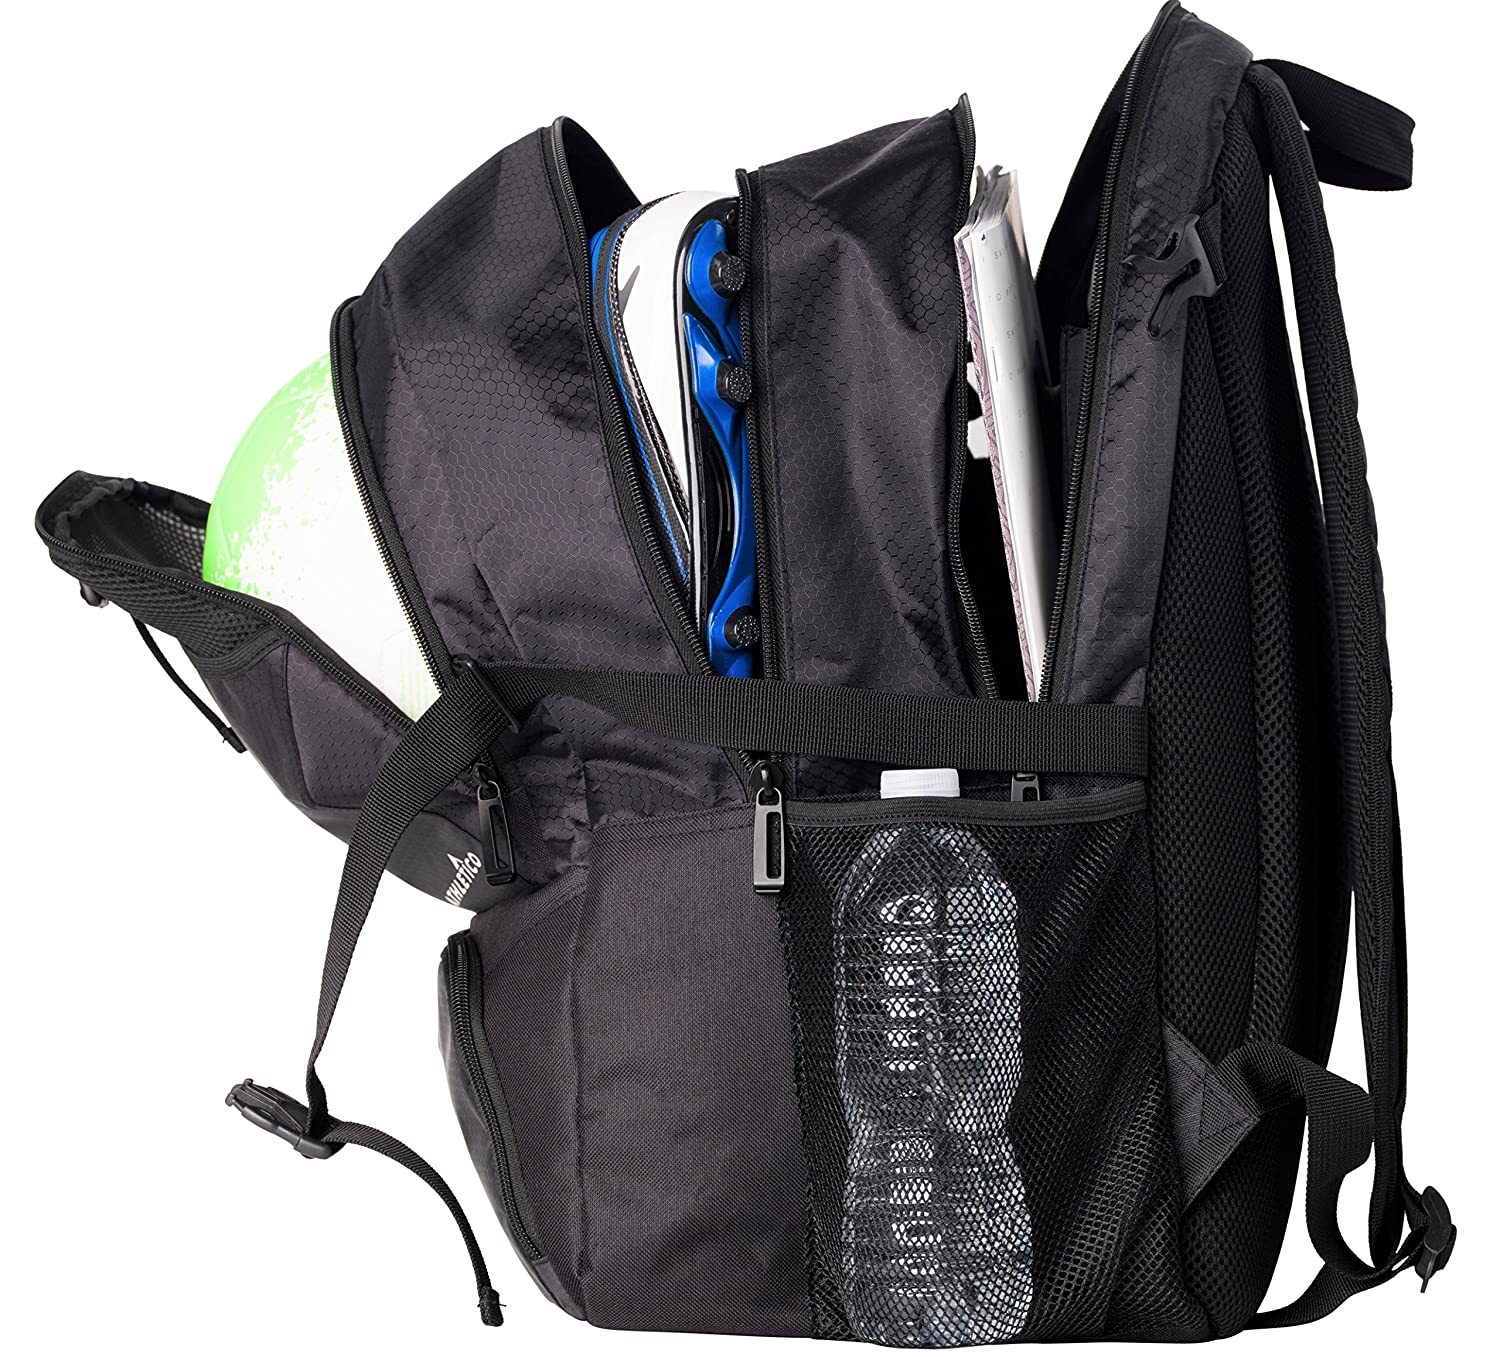 d0579b512a47 Youth Soccer Backpack With Ball Holder- Fenix Toulouse Handball